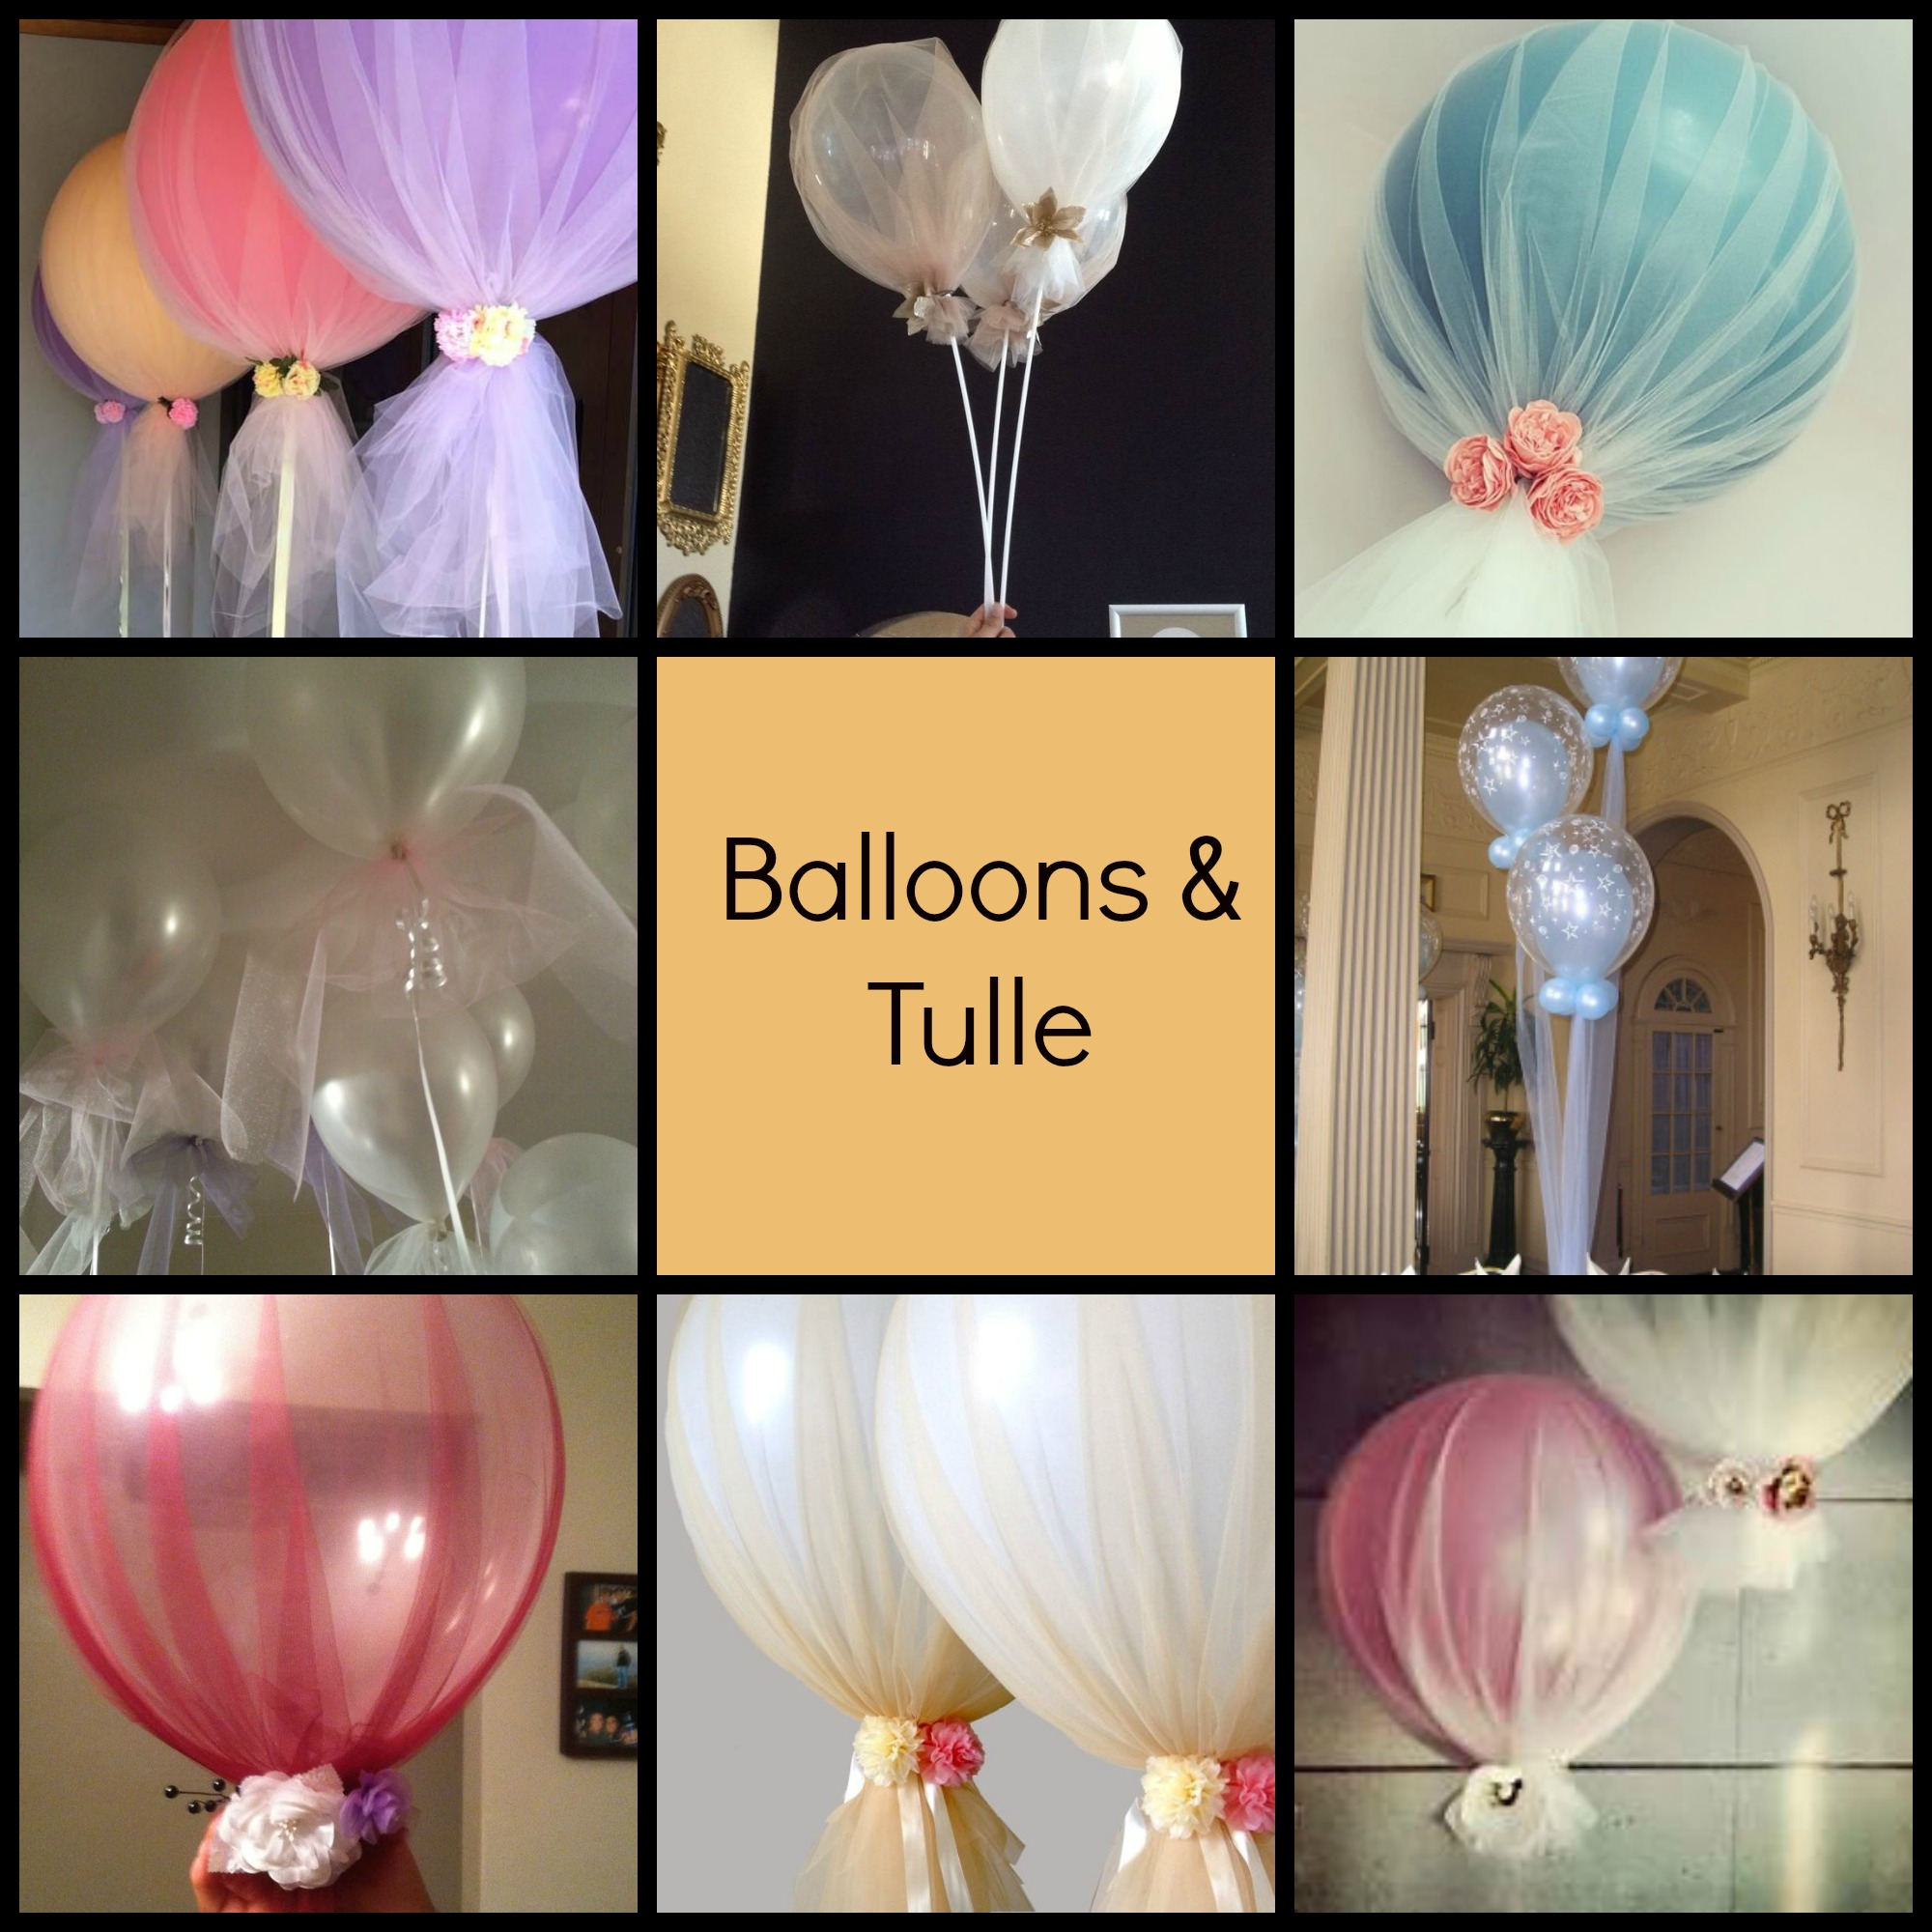 Balloons and Tulle - Share Your Craft - Share Your Crafts